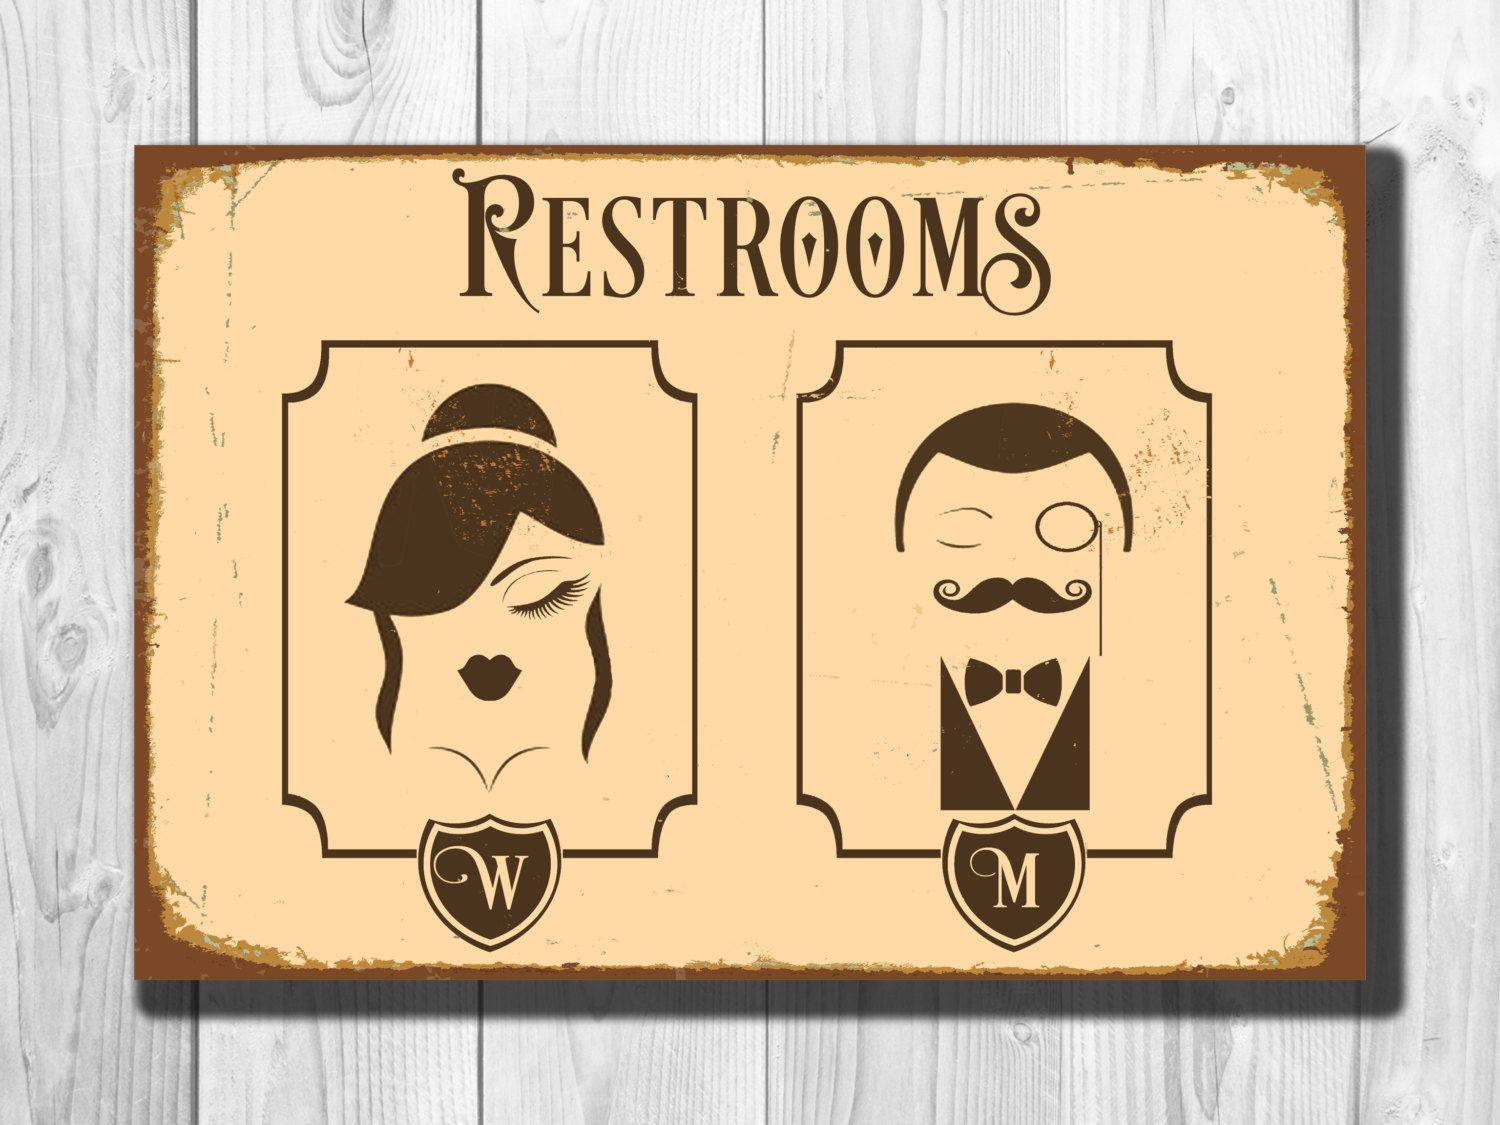 RESTROOM SIGN Restroom Signs Toilet Sign Male Female Restrooms - Male bathroom sign